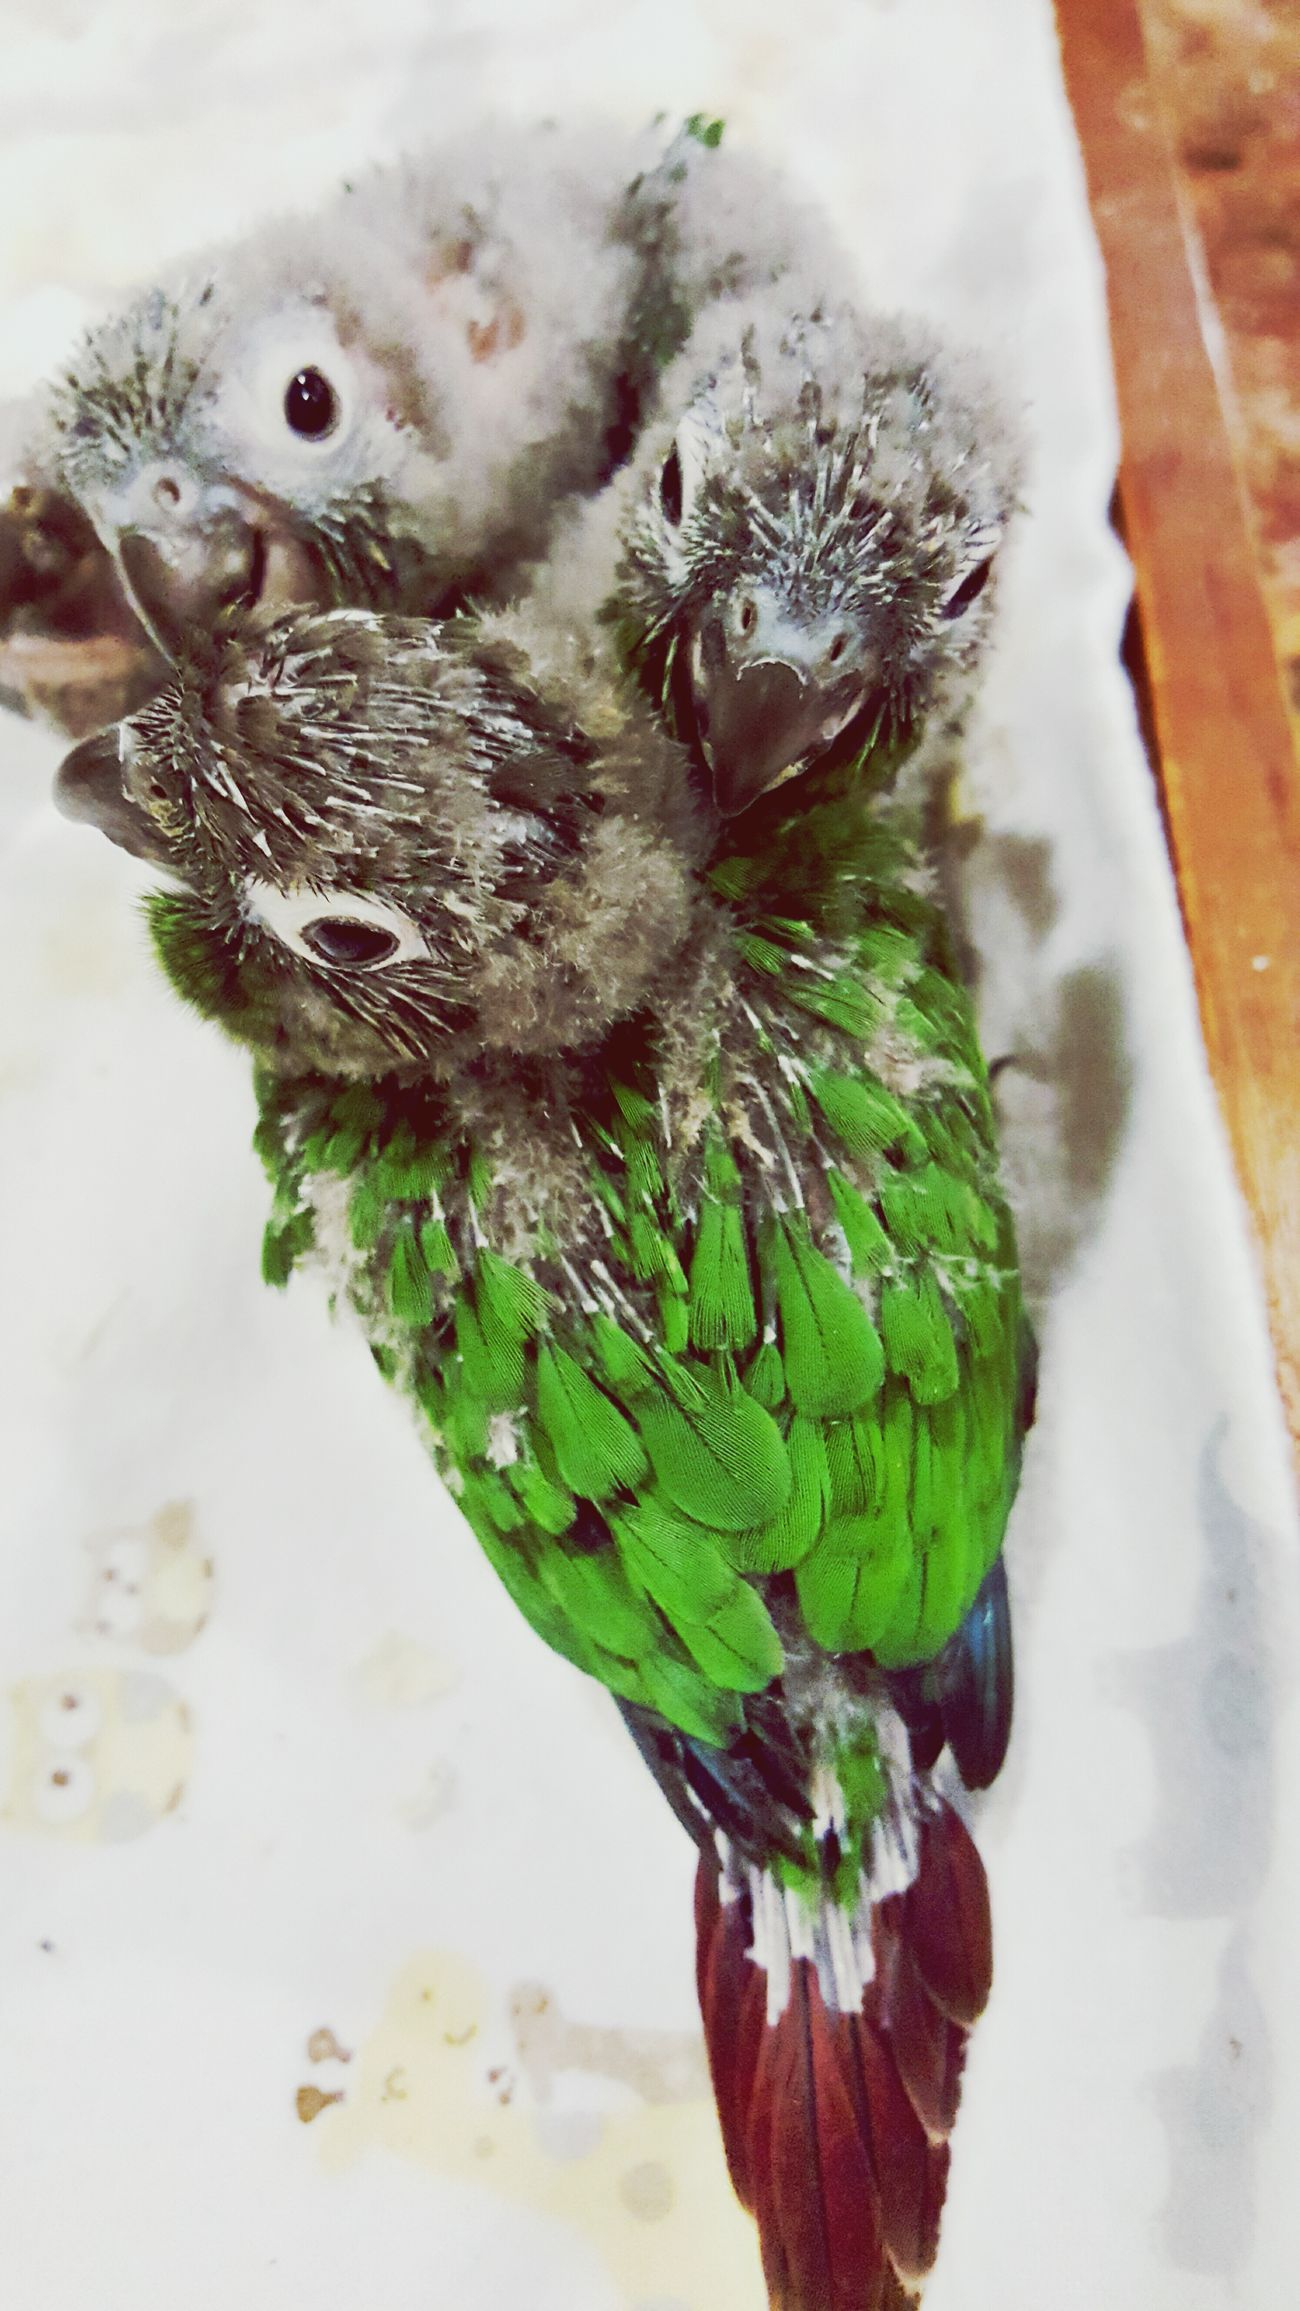 Puffy with the rest of her siblings from the same clutch, Bree to the top right, Pretzel in the middle, and Dewey to the top left Check This Out Taking Photos Relaxing Enjoying Life Greencheekconure Cutepets Cute Baby Conure Birds_collection Bird Photography Birds Petlove  Pet Life  Pet Portrait Petlover Pet Love Pets Corner Pet Photography  Cute♡ Cuteness